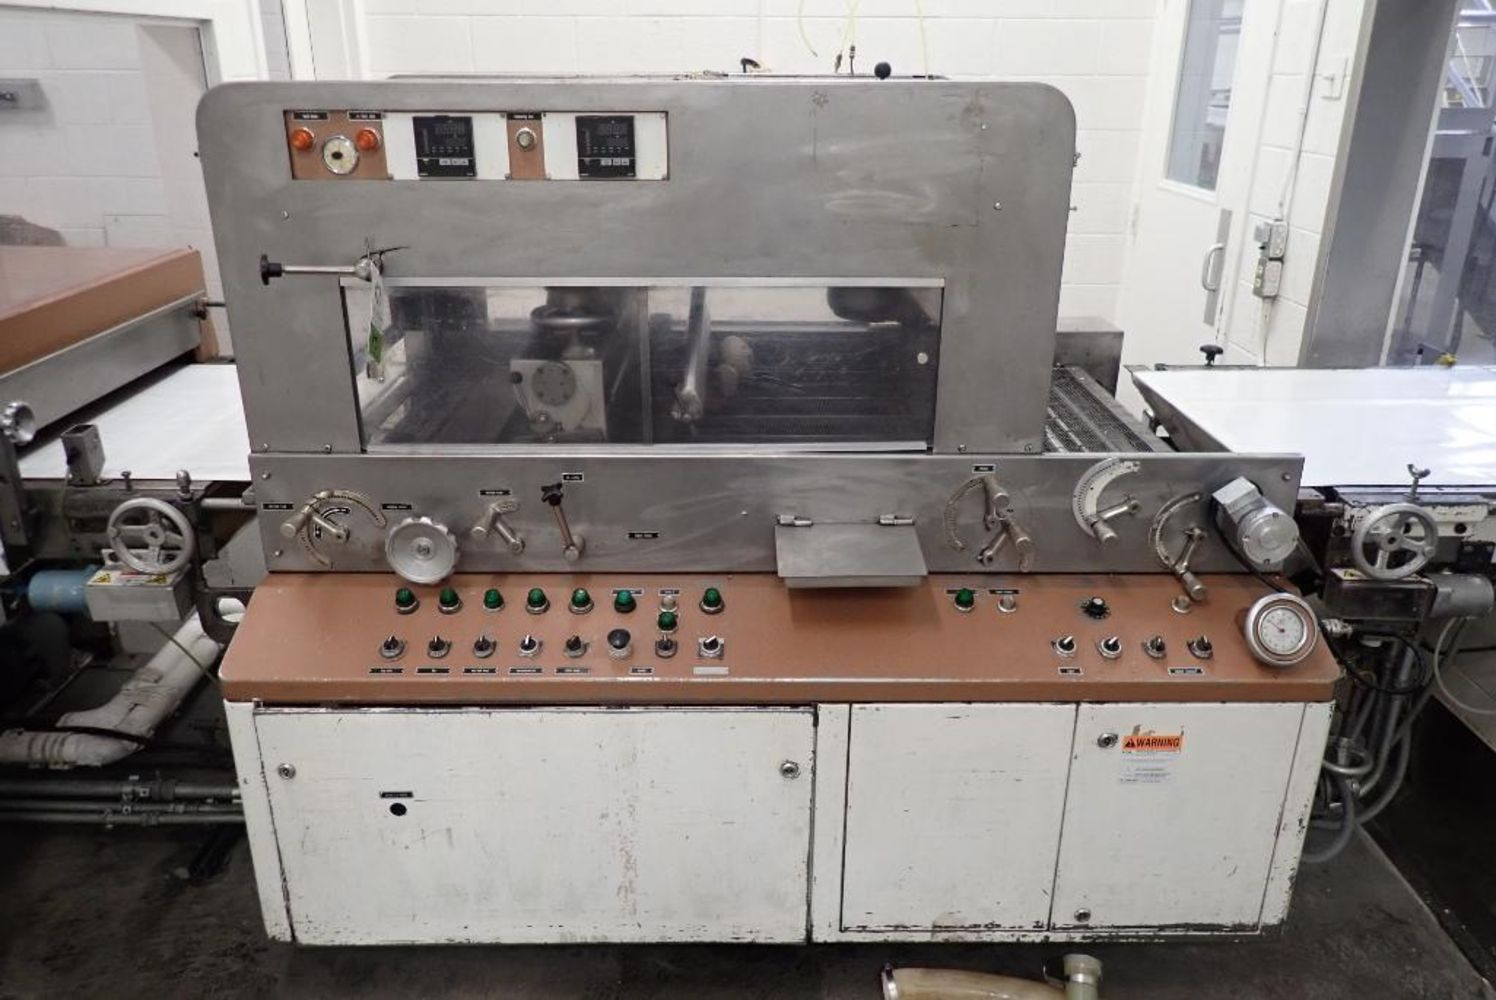 Surplus Equipment to the Ongoing Operations of a Large National Candy/Confections Company